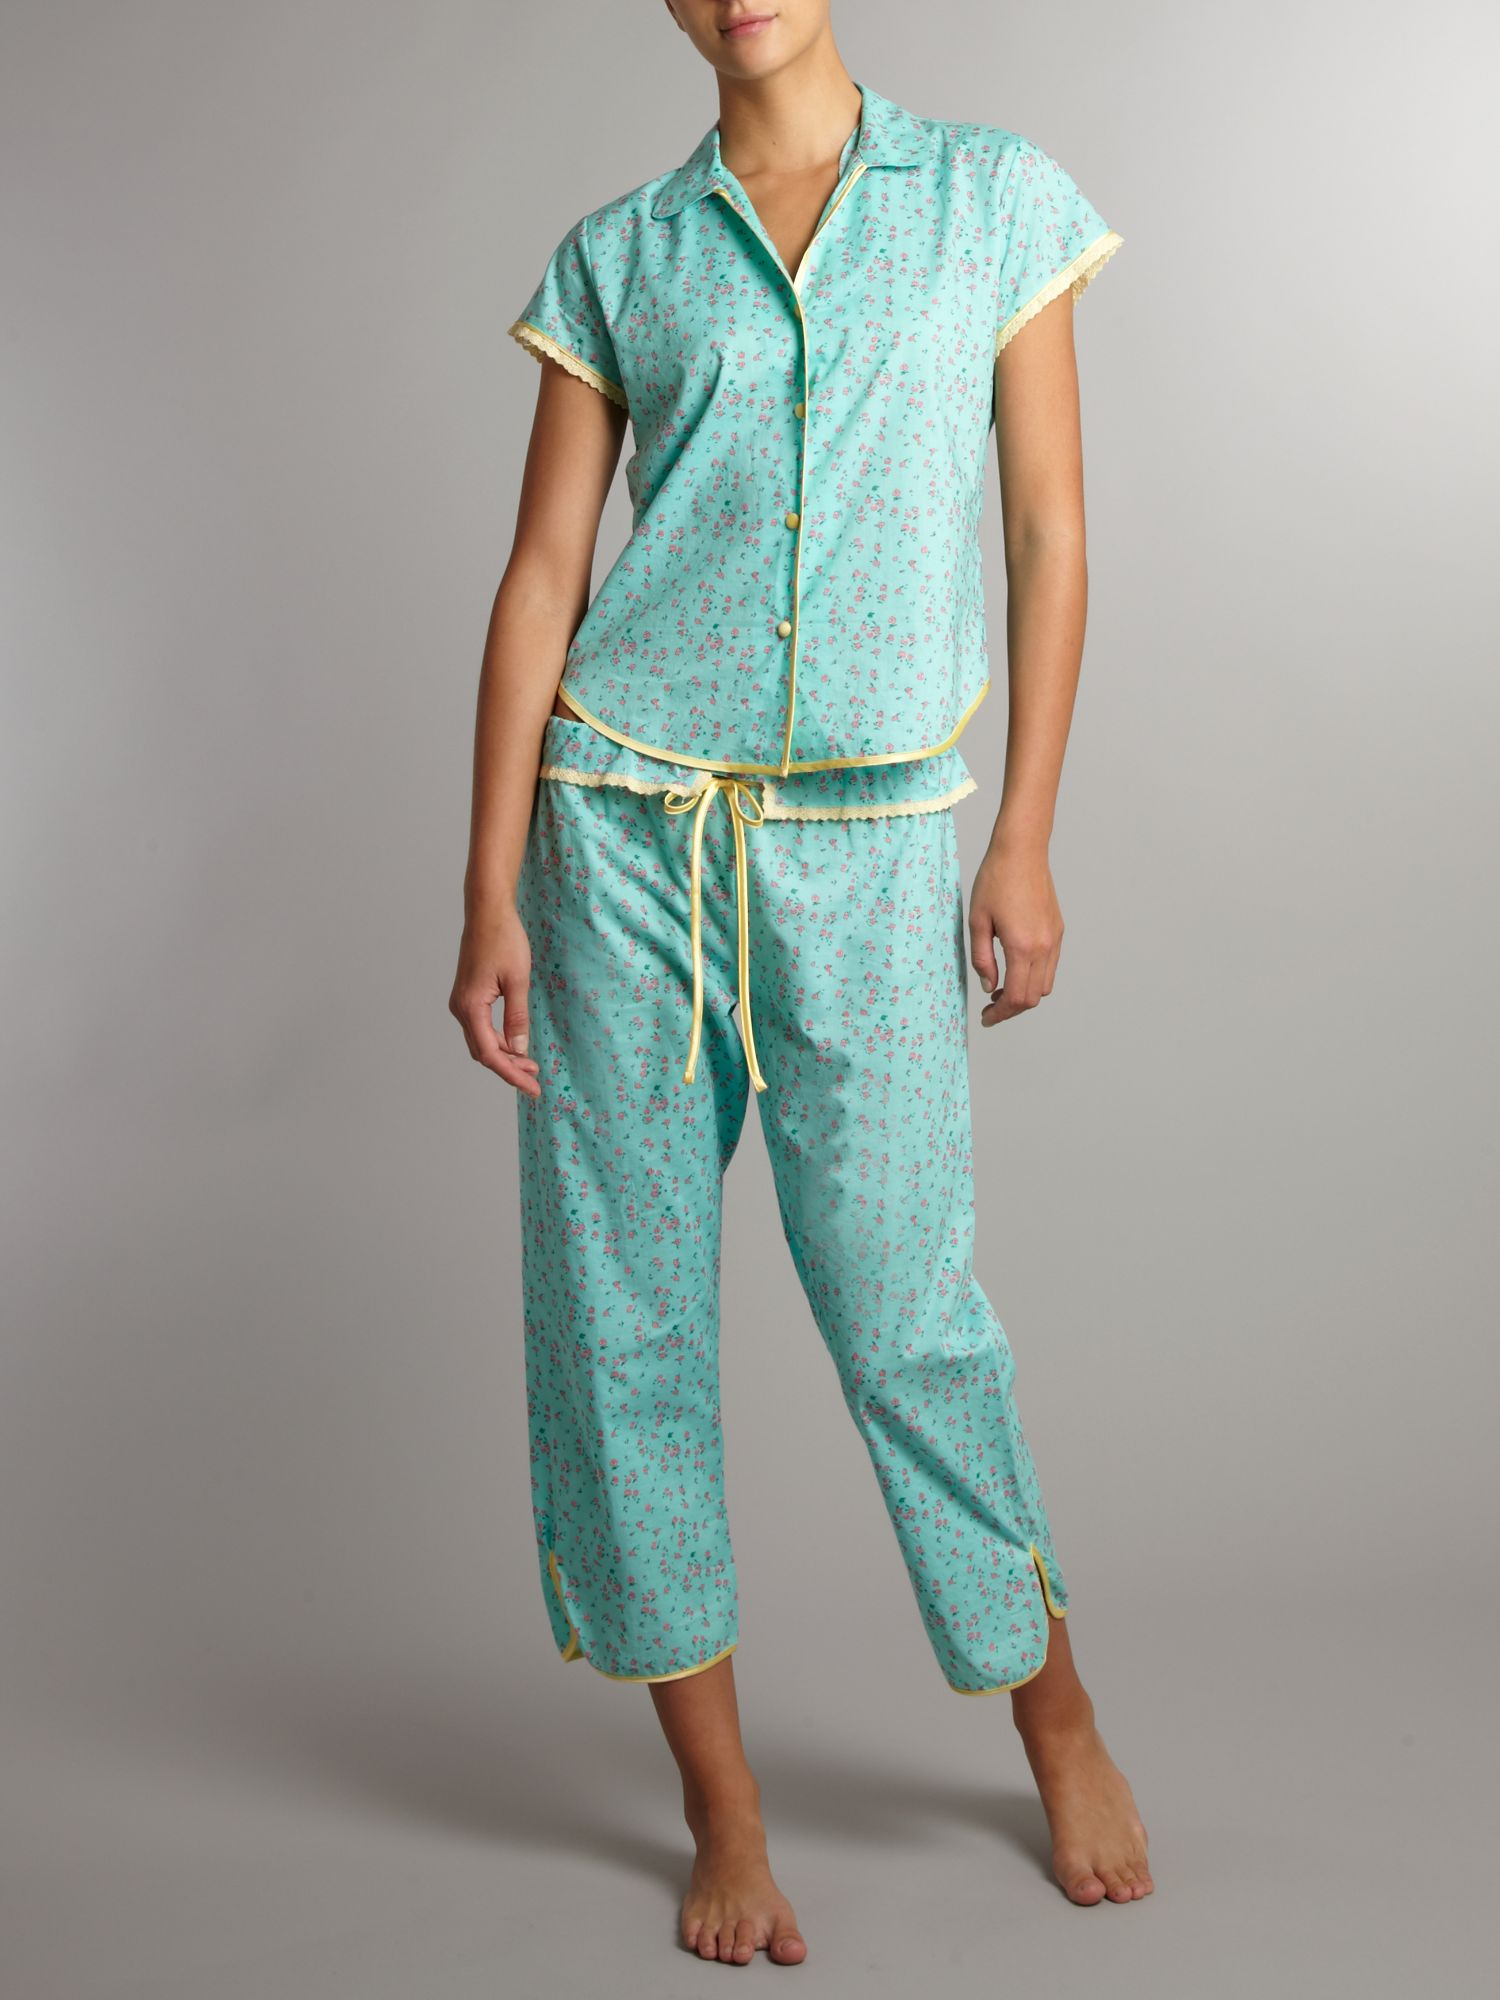 Lemonie green print PJ top